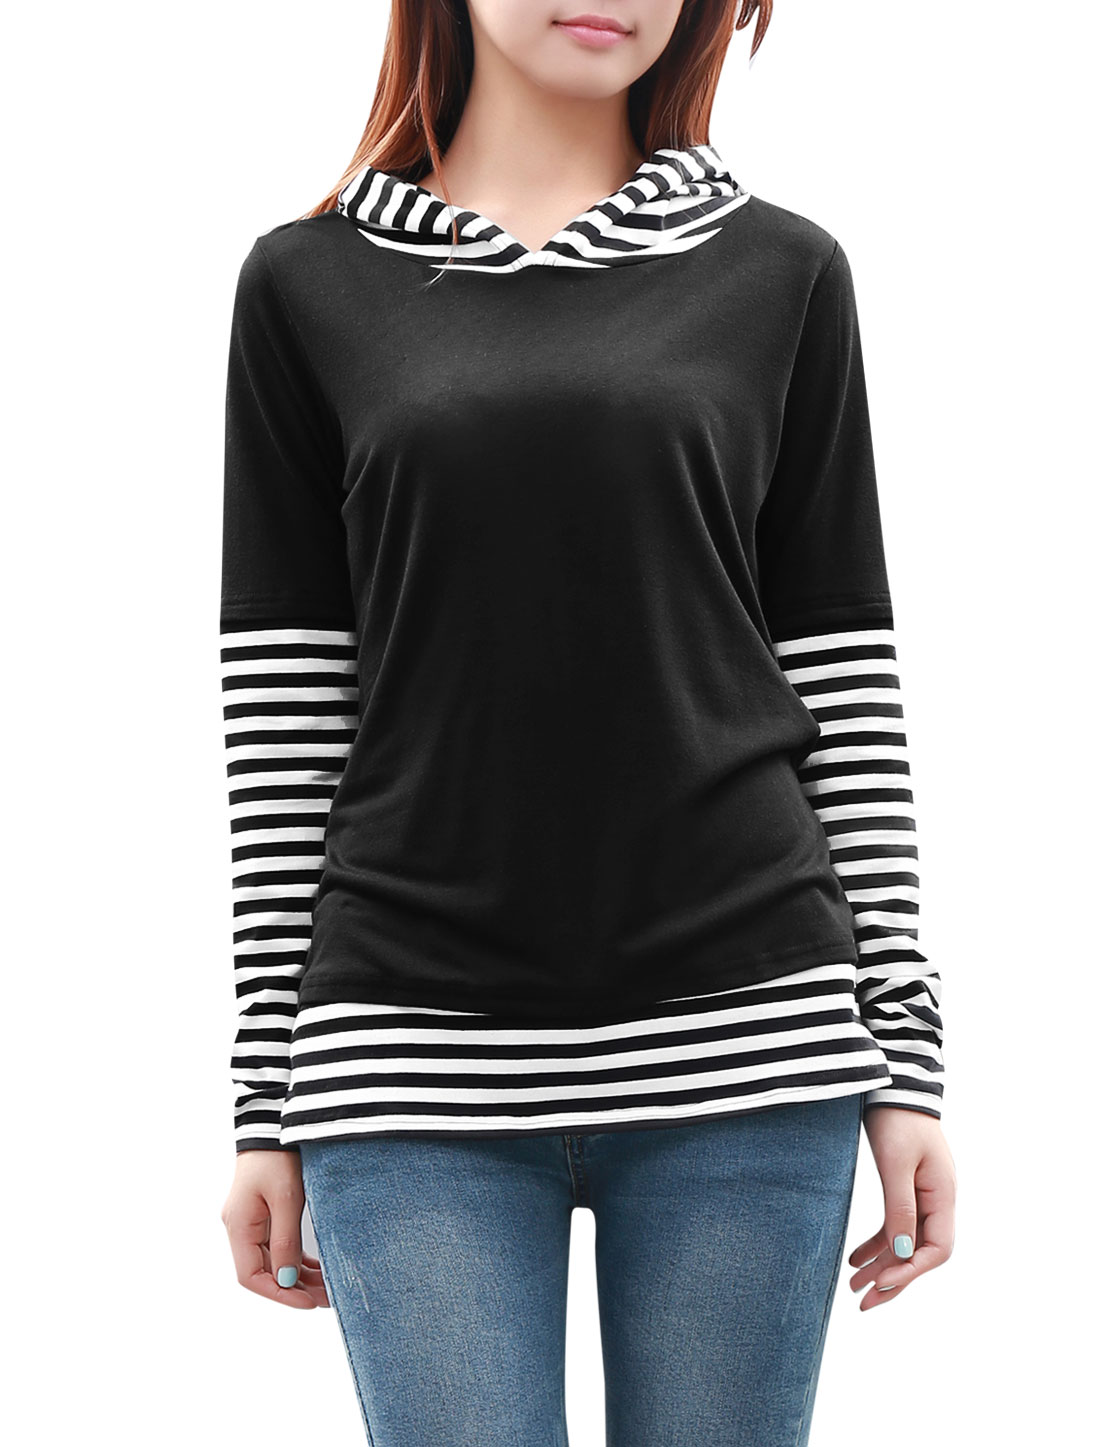 Ladies Stylish Stripes Pattern Black White Tunic Top Shirt M